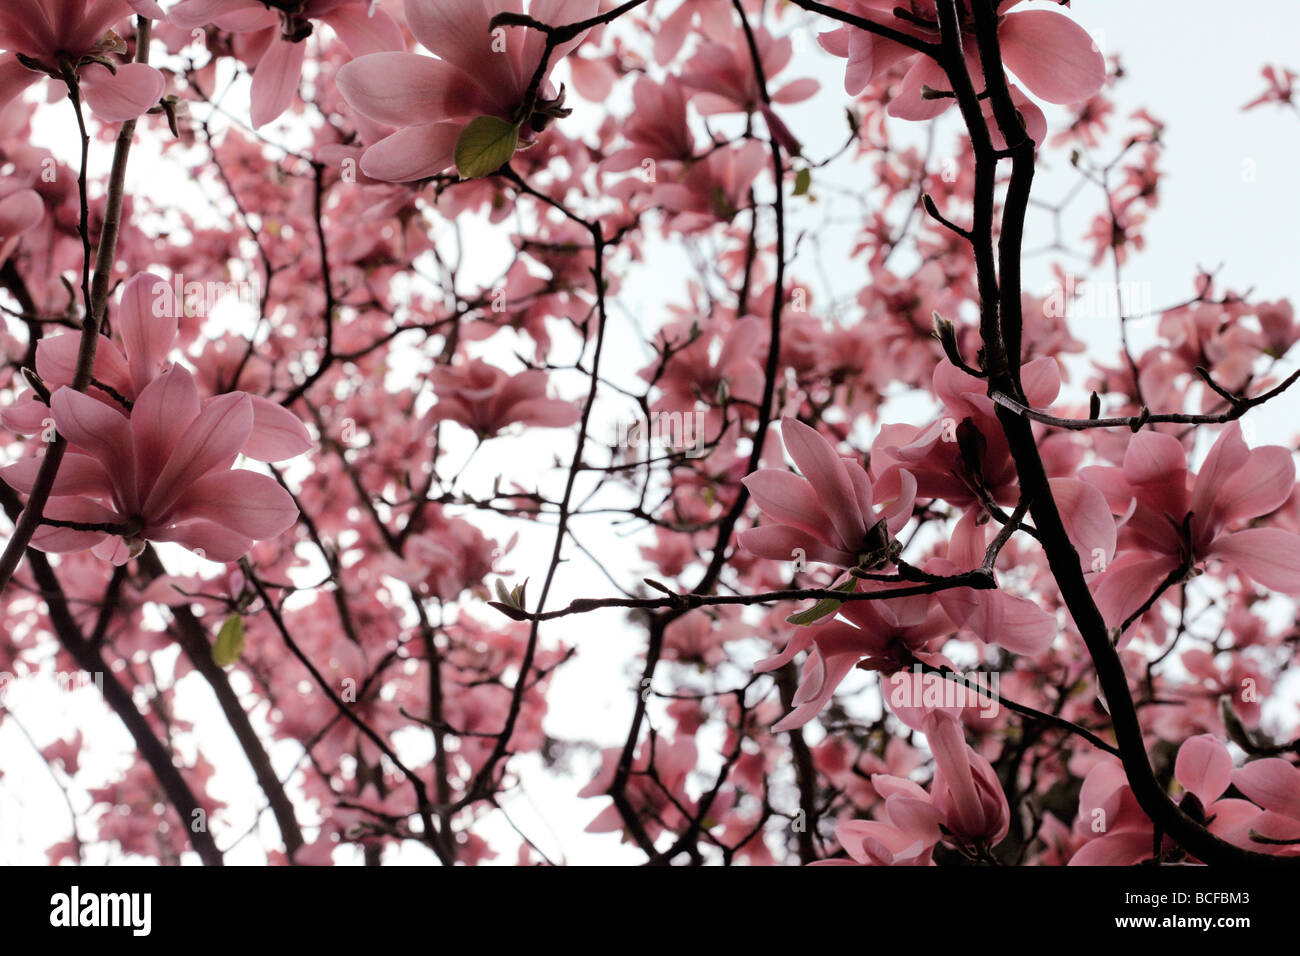 Striking Pink Magnolia Tree Blooms Fine Art Photography Jane Ann